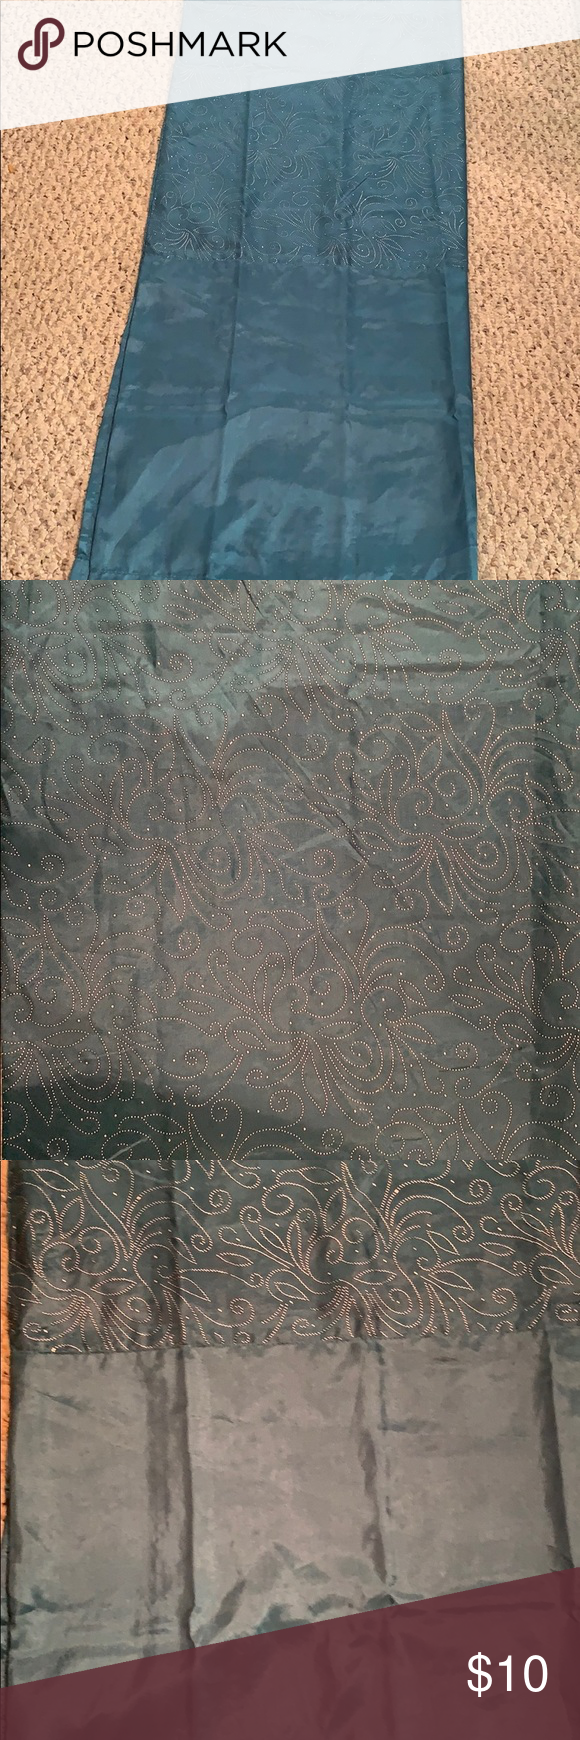 Comfort Bay Nwot Textured Shower Curtain Turquoise Background